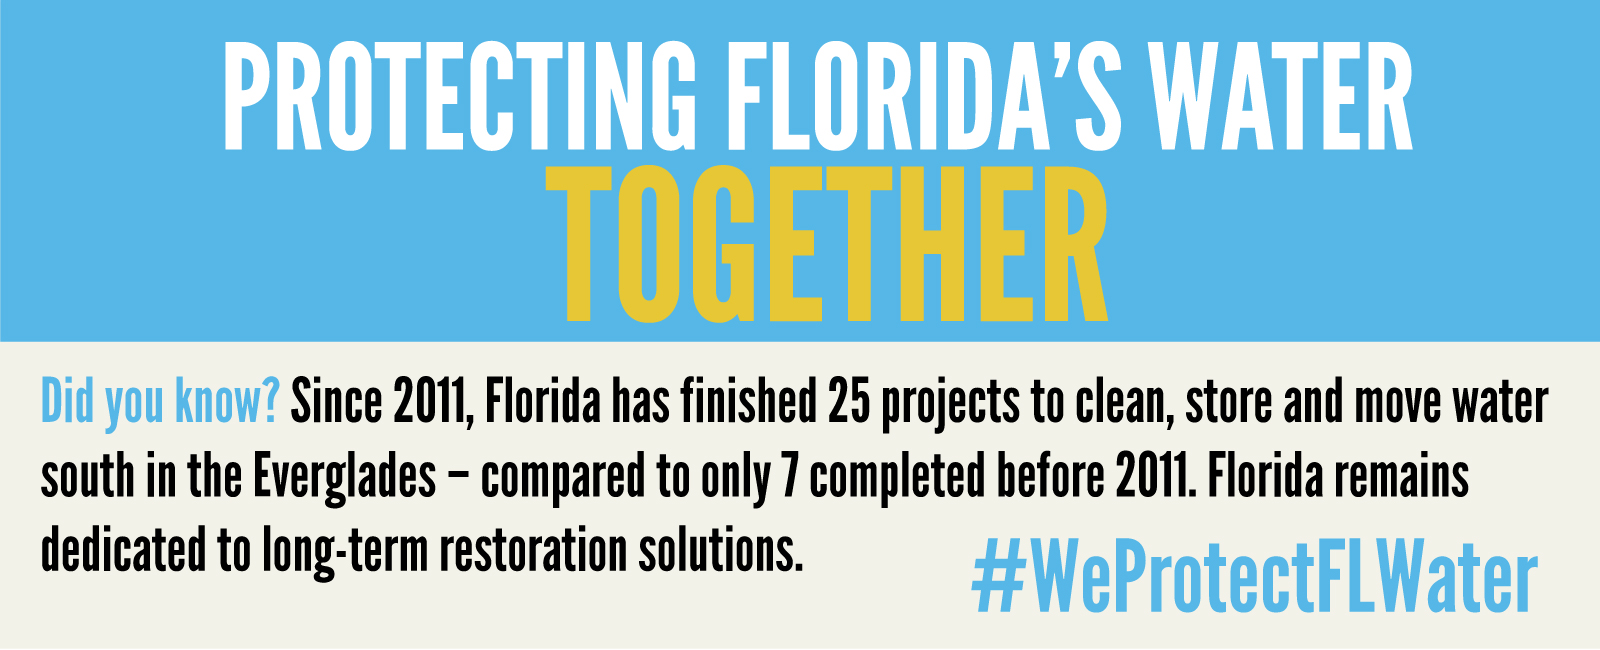 DYK? Since 2011, Florida has finished 25 projects to clean, store and move water south in the Everglades – compared to only 7 completed before 2011. Florida remains dedicated to long-term restoration solutions. #WeProtectFLWater